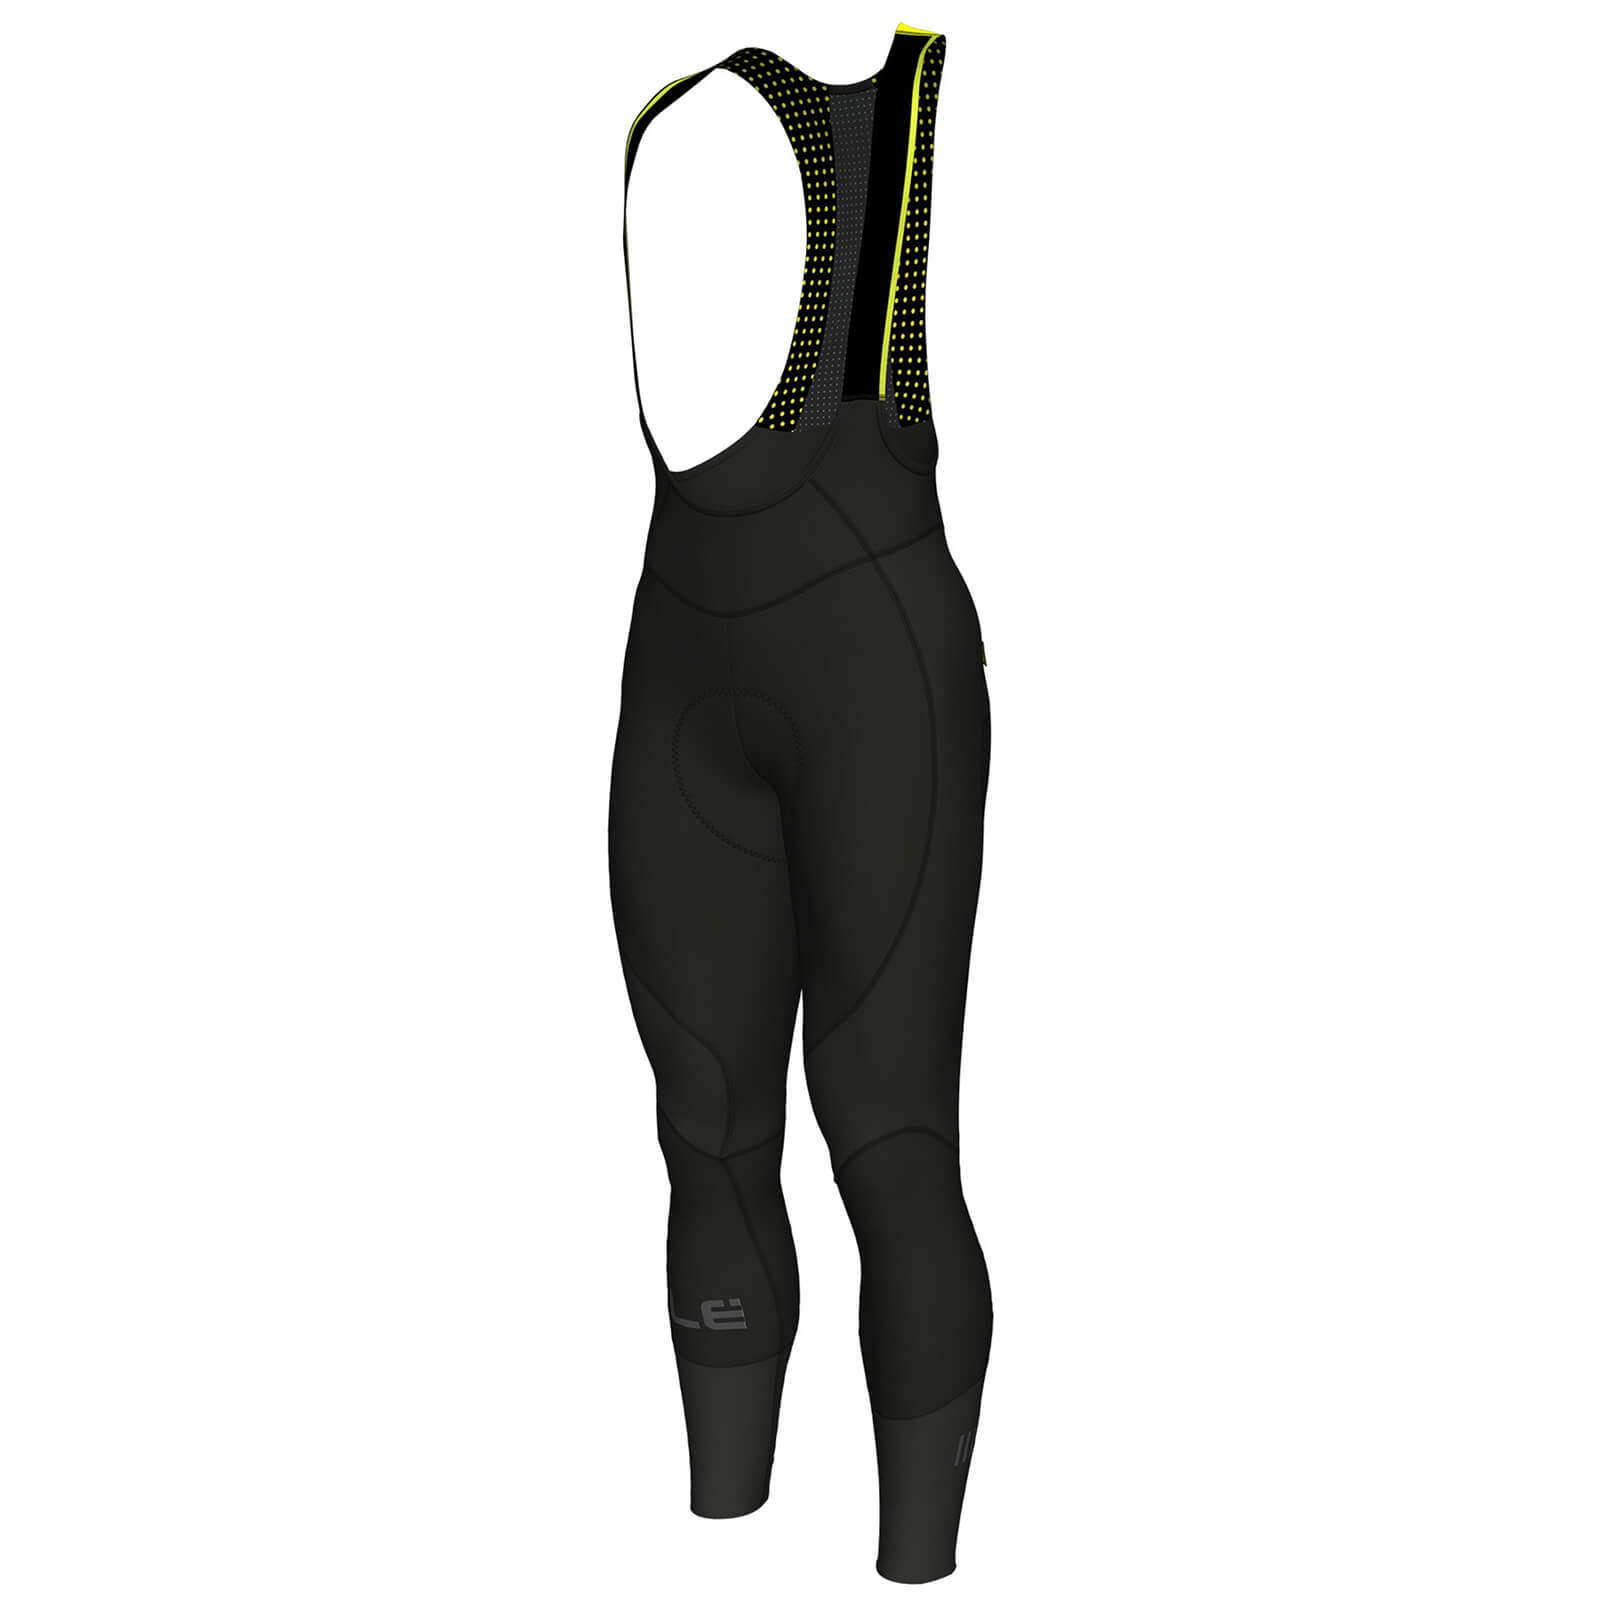 Alé CP 2.0 Be-Hot Bib Tights - Black